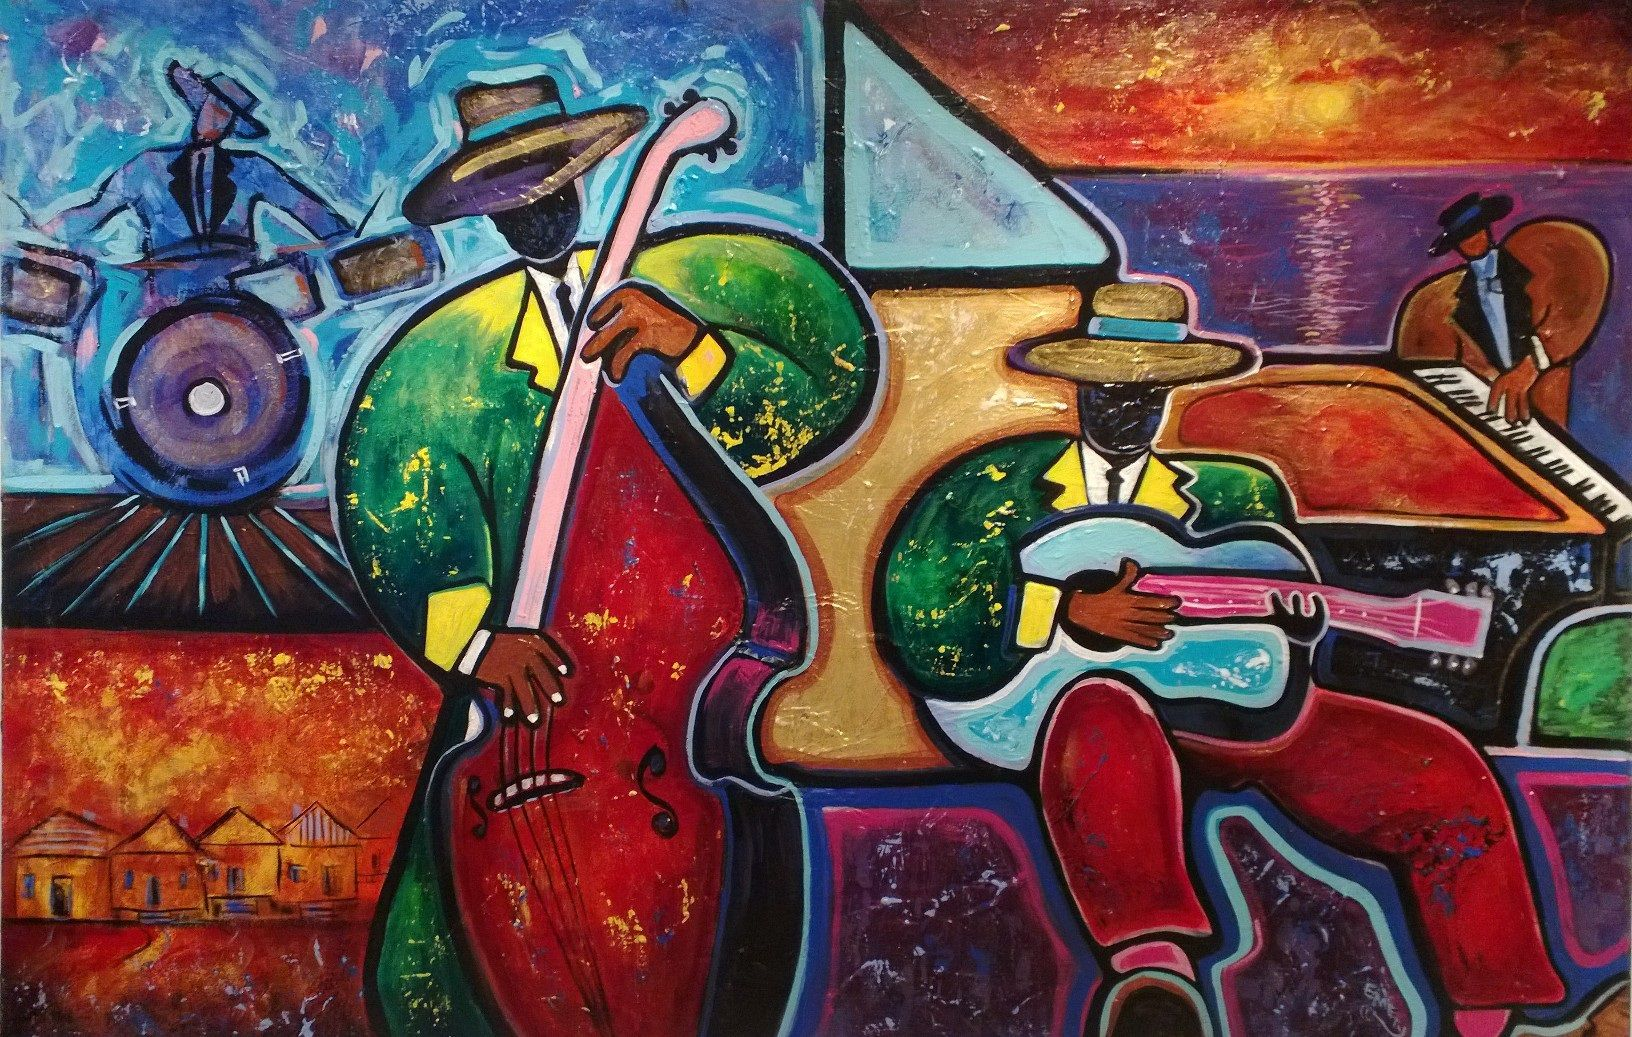 """Jazz Festival"" new music art from Memphis artist Emery Franklin...hip, colorful, creative. (Courtesy of Insky's Art, Birmingham, AL)"